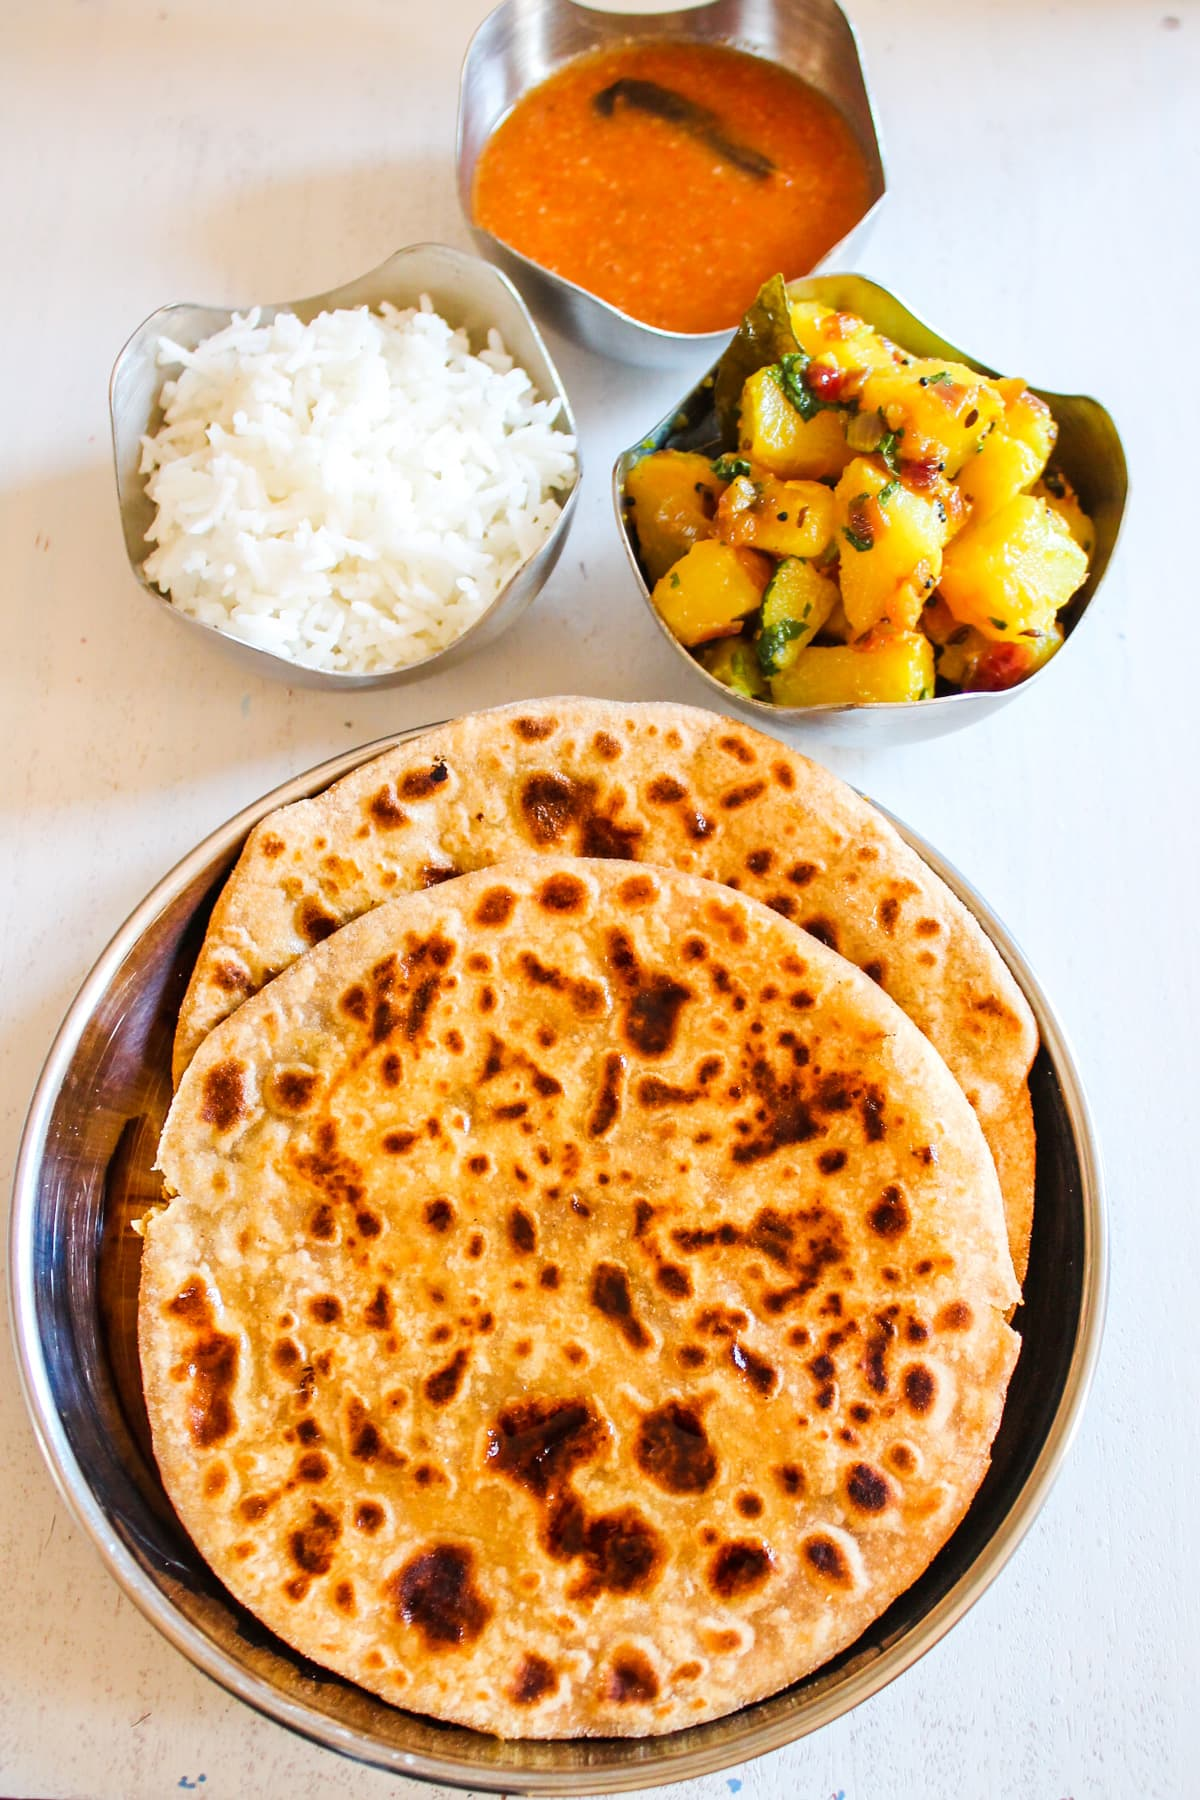 two puran poli in a steel plate with rice, bhaji and amti in steel bowl on side.